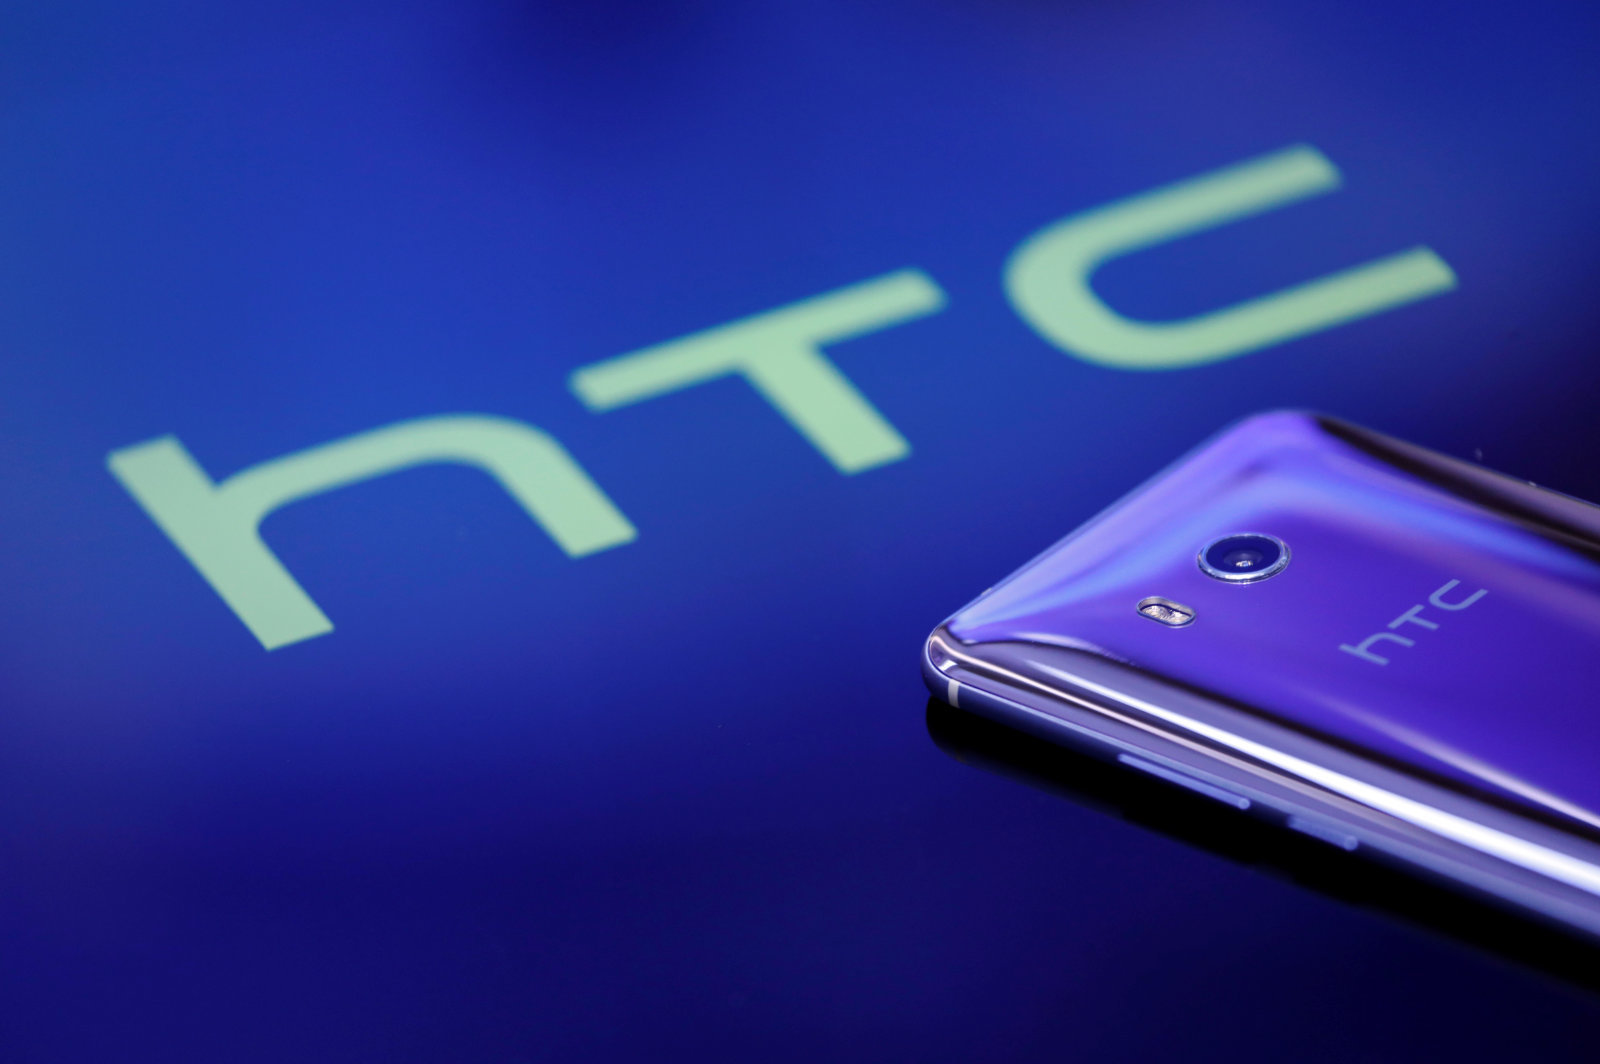 HTC plans to release its first 5G phone in 2020HTC将于2020年推出首款5G智能手机